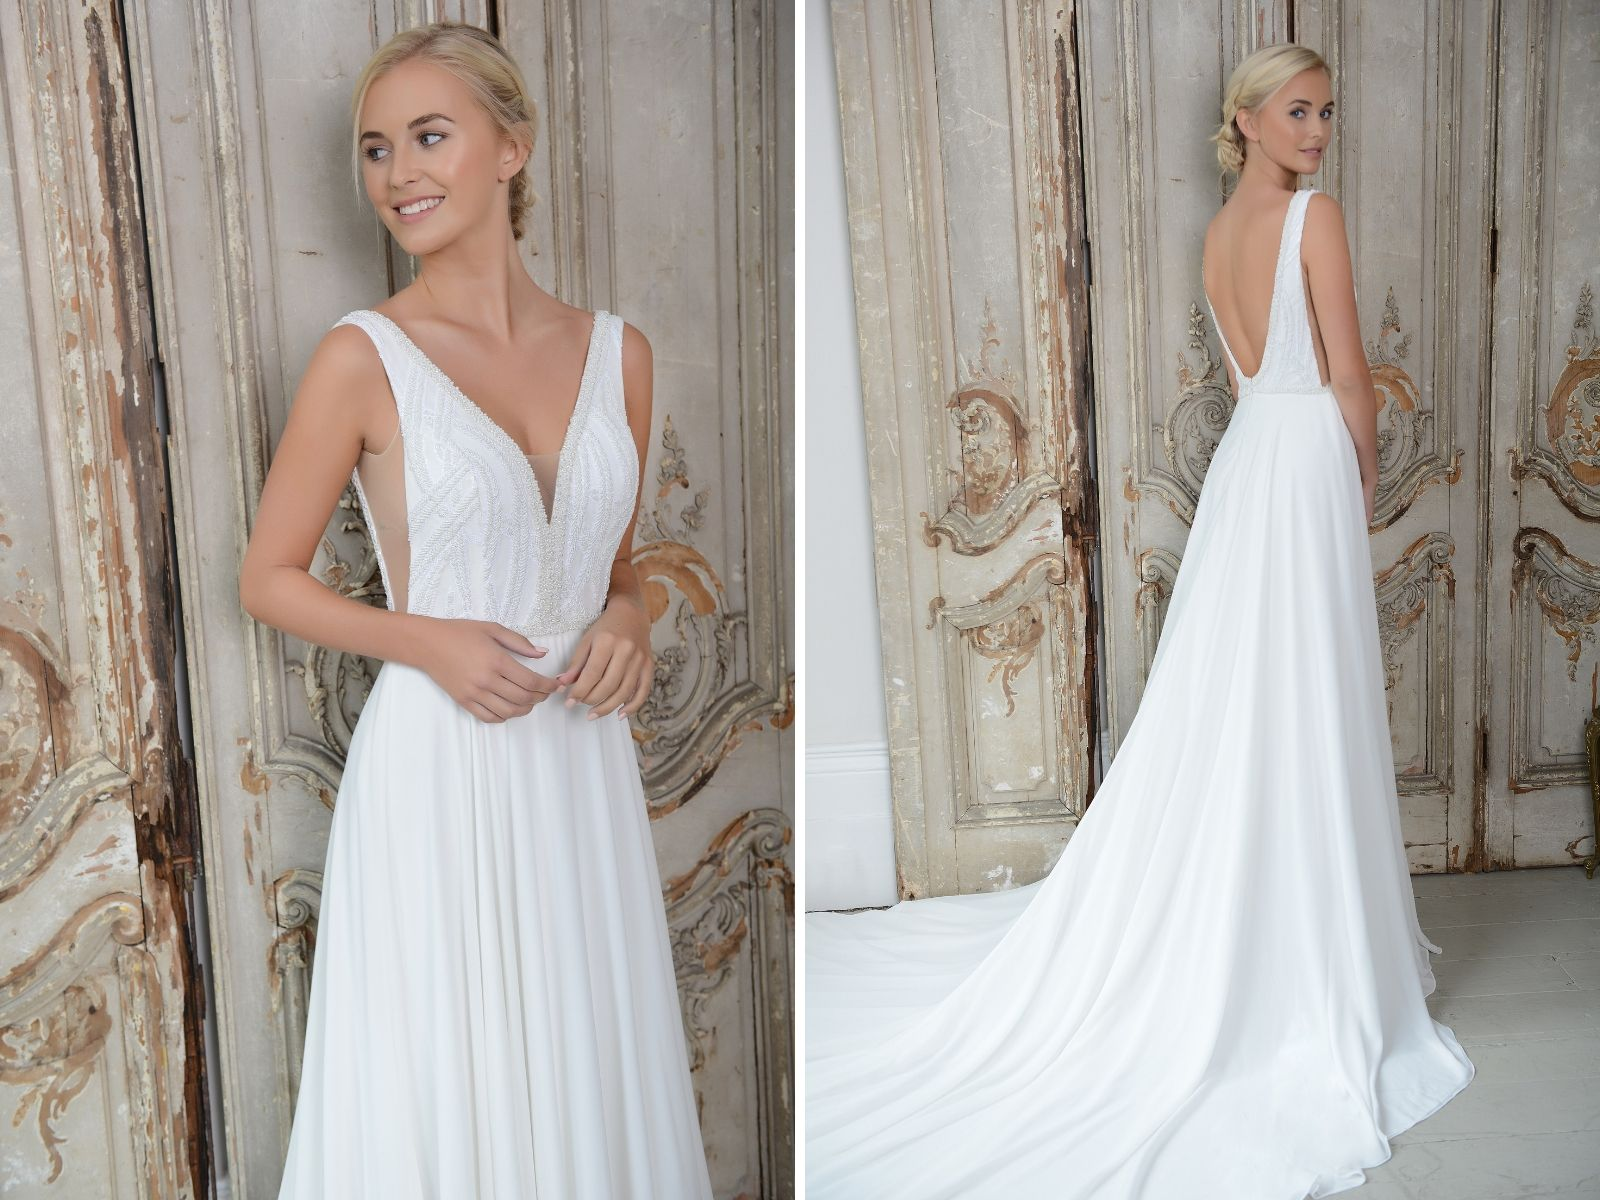 Elegant bridal gown by Loulou Bride